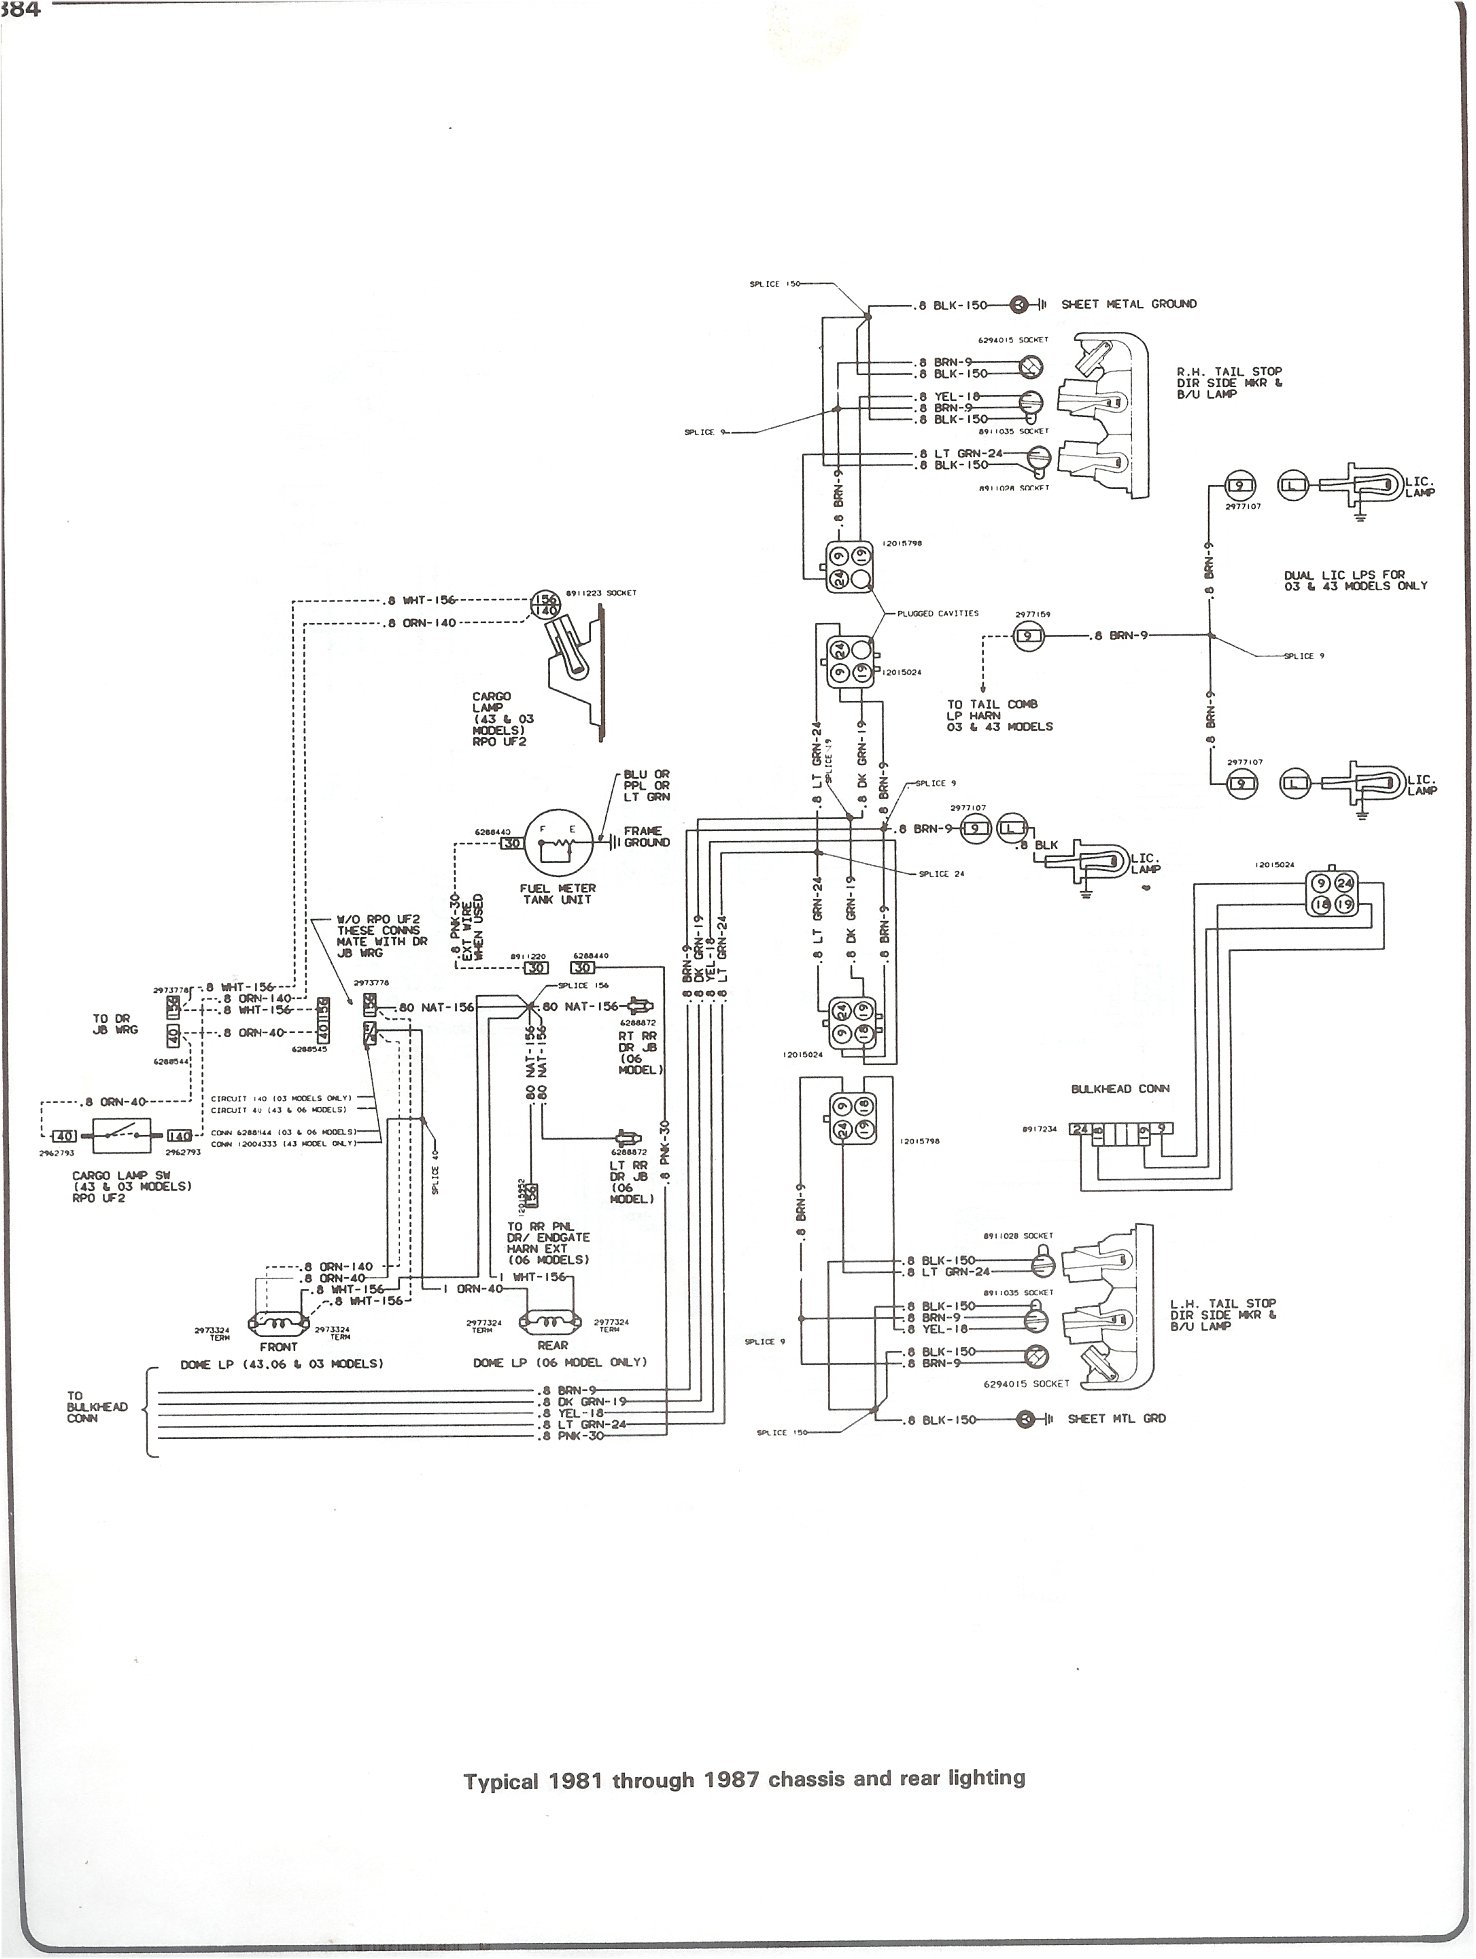 1973 Chevy Impala Fuse Box Diagram Smart Wiring Diagrams For 2007 C60 Block Example Electrical U2022 Rh Emilyalbert Co 2004 Location 2002